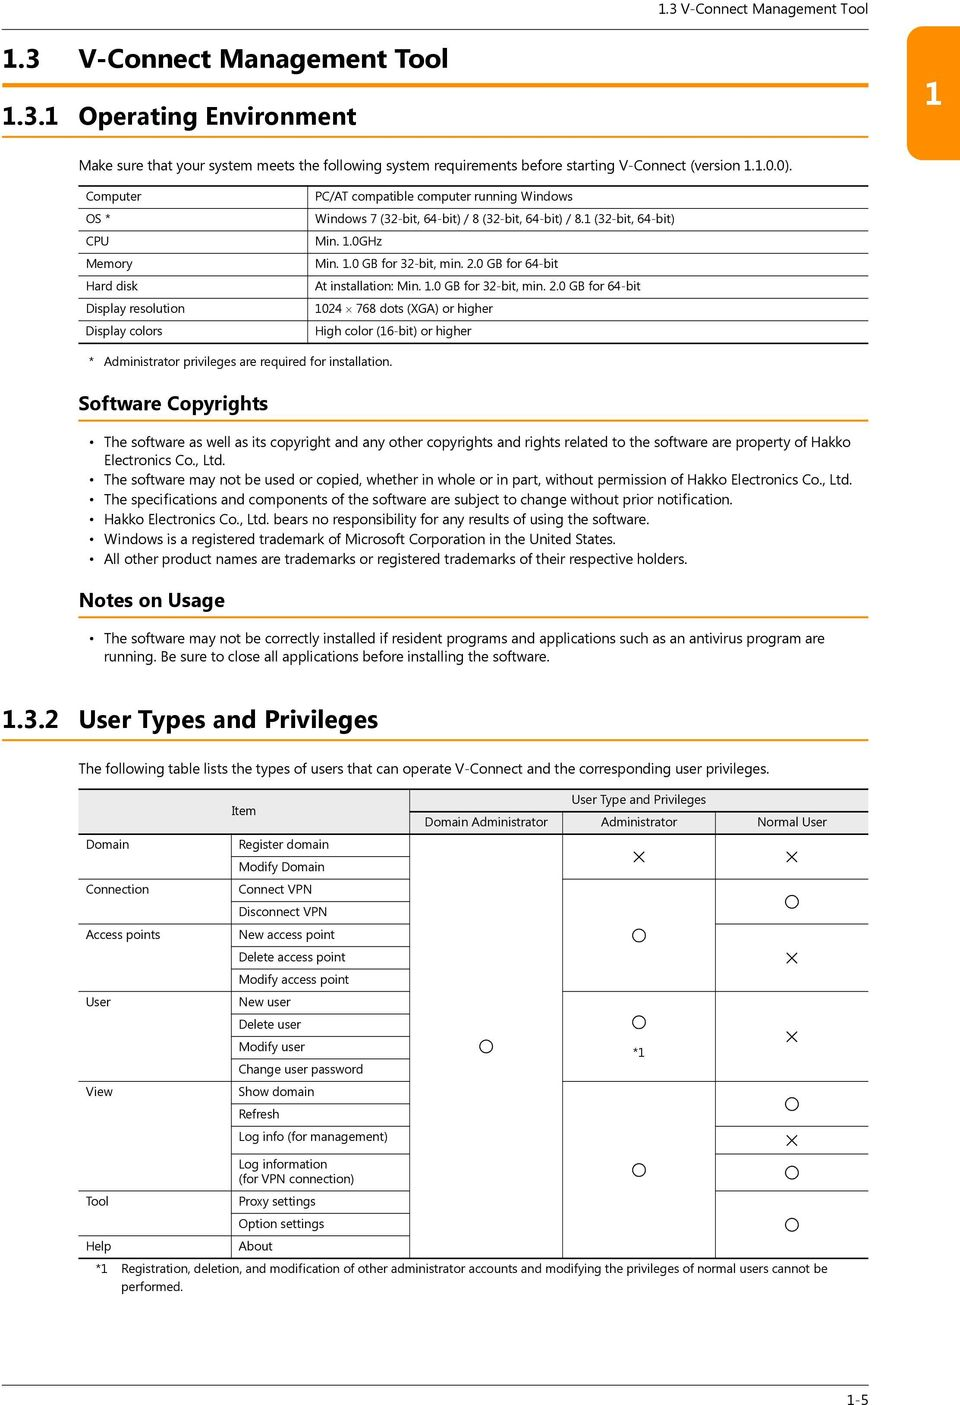 Software Copyrights The software as well as its copyright and any other copyrights and rights related to the software are property of Hakko Electronics Co., Ltd.